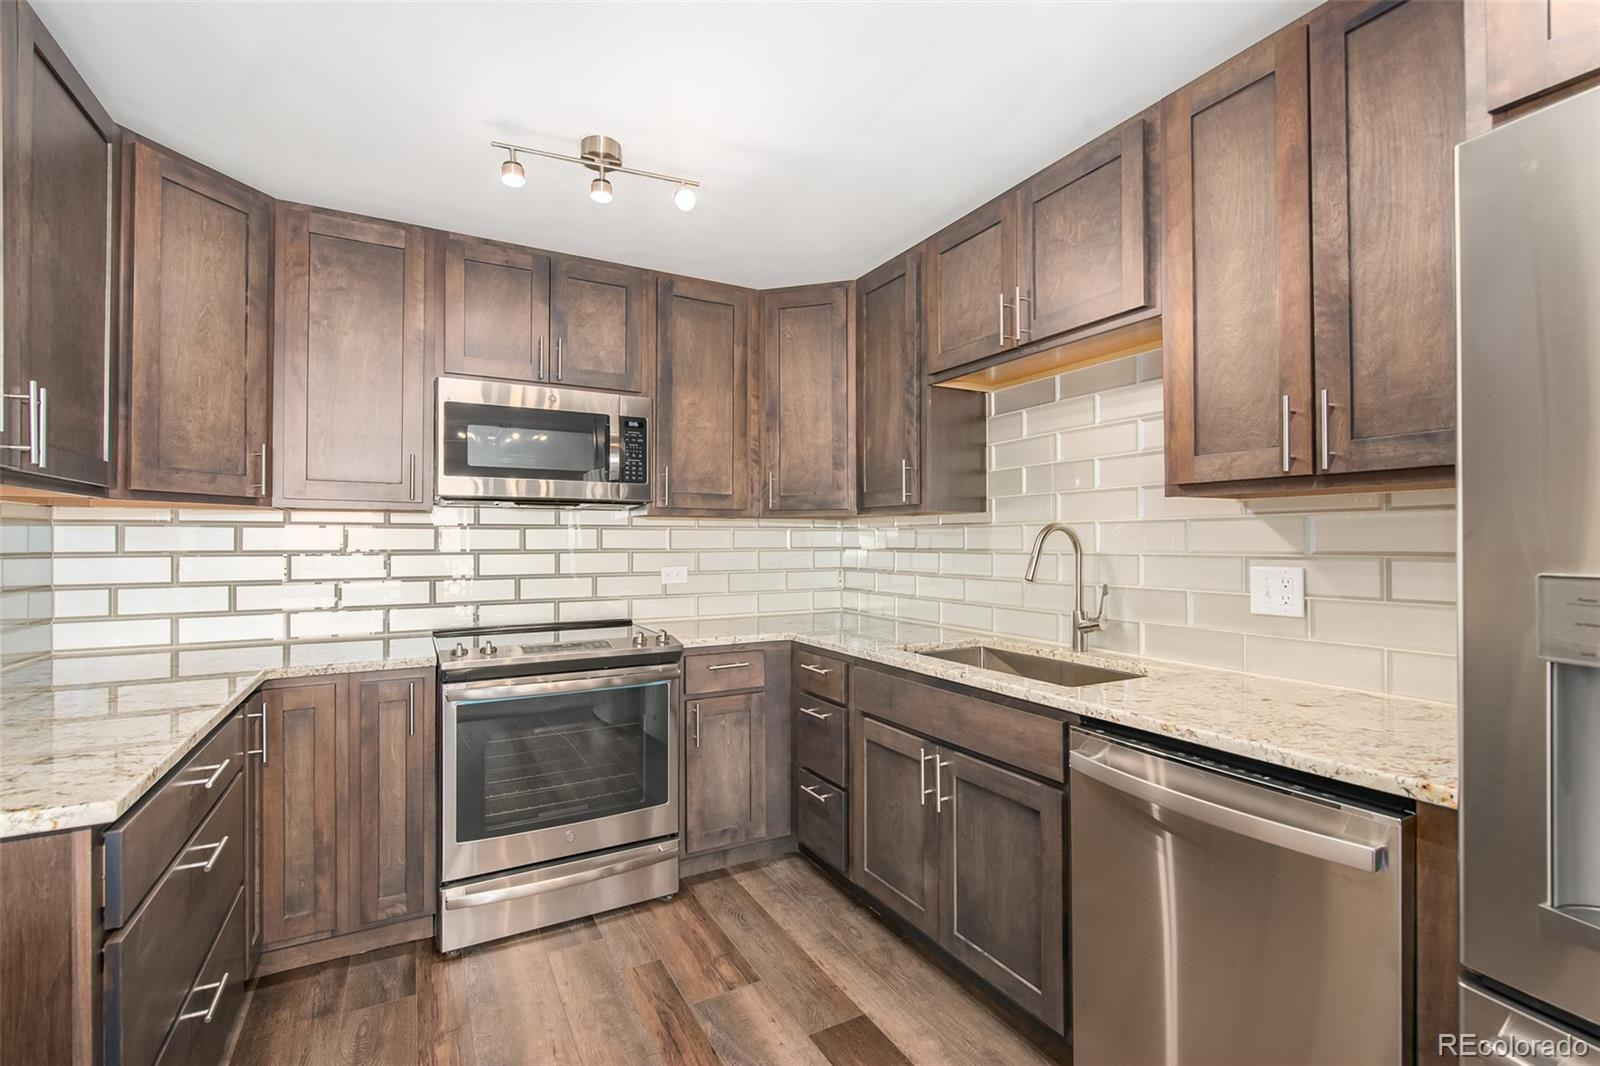 Professional interior designed remodeled unit in 55+ community for active adults. Kitchen with new soft close cabinets, custom tile backsplash, slab granite countertops, brand new stainless steel appliances and island. Living room with new carpet, ceiling fan and new room AC unit. New LED lighting throughout. Enclosed porch provides additional living space year round. Completely remodeled designer bathrooms. Master bedroom with walk-in closet. Large closet provides additional storage. Highest quality finishes - you won't be disappointed. Detached garage just outside the building with additional storage.